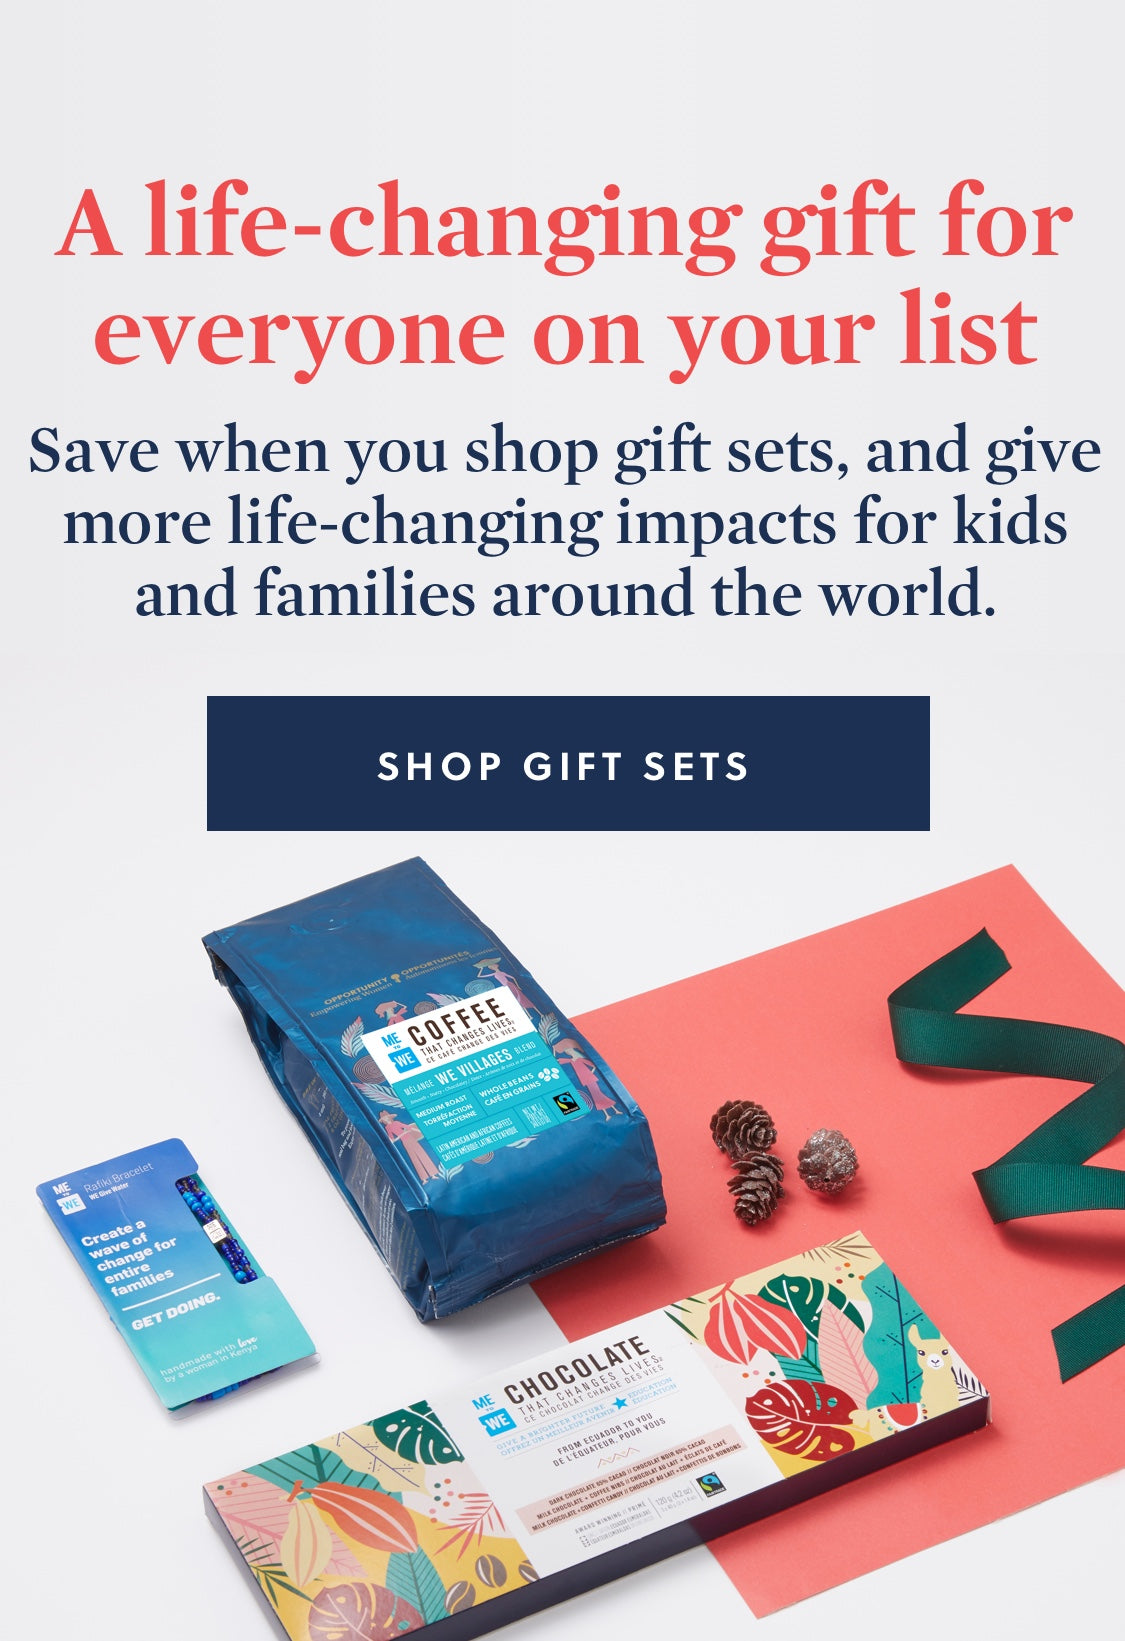 A life-changing gift for everyone on your list Save when you shop gift sets, and give more life-changing impacts for kids and families around the world. | Shop gift sets